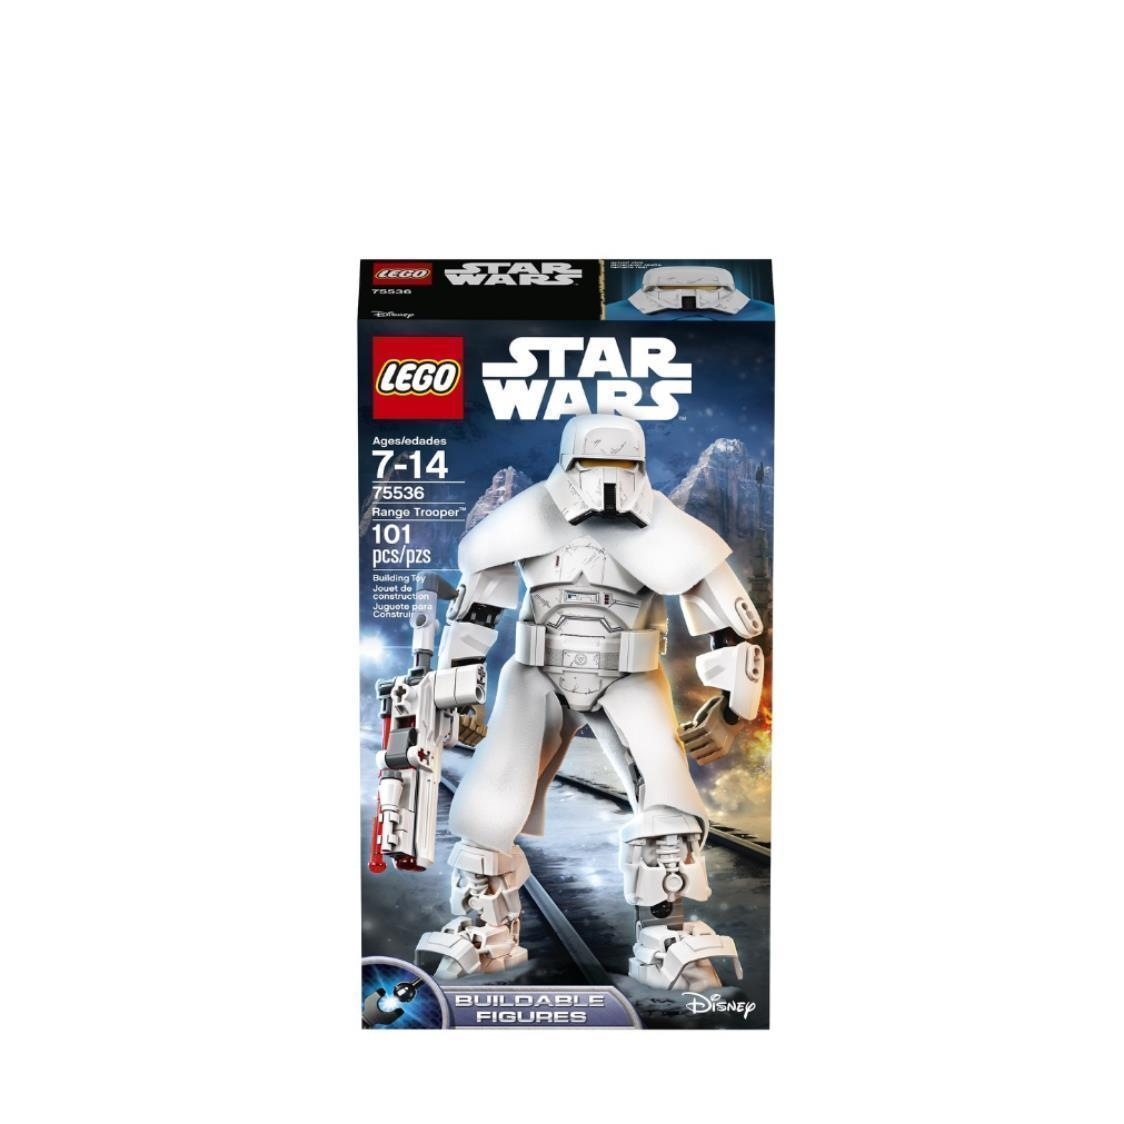 Range Trooper 75536